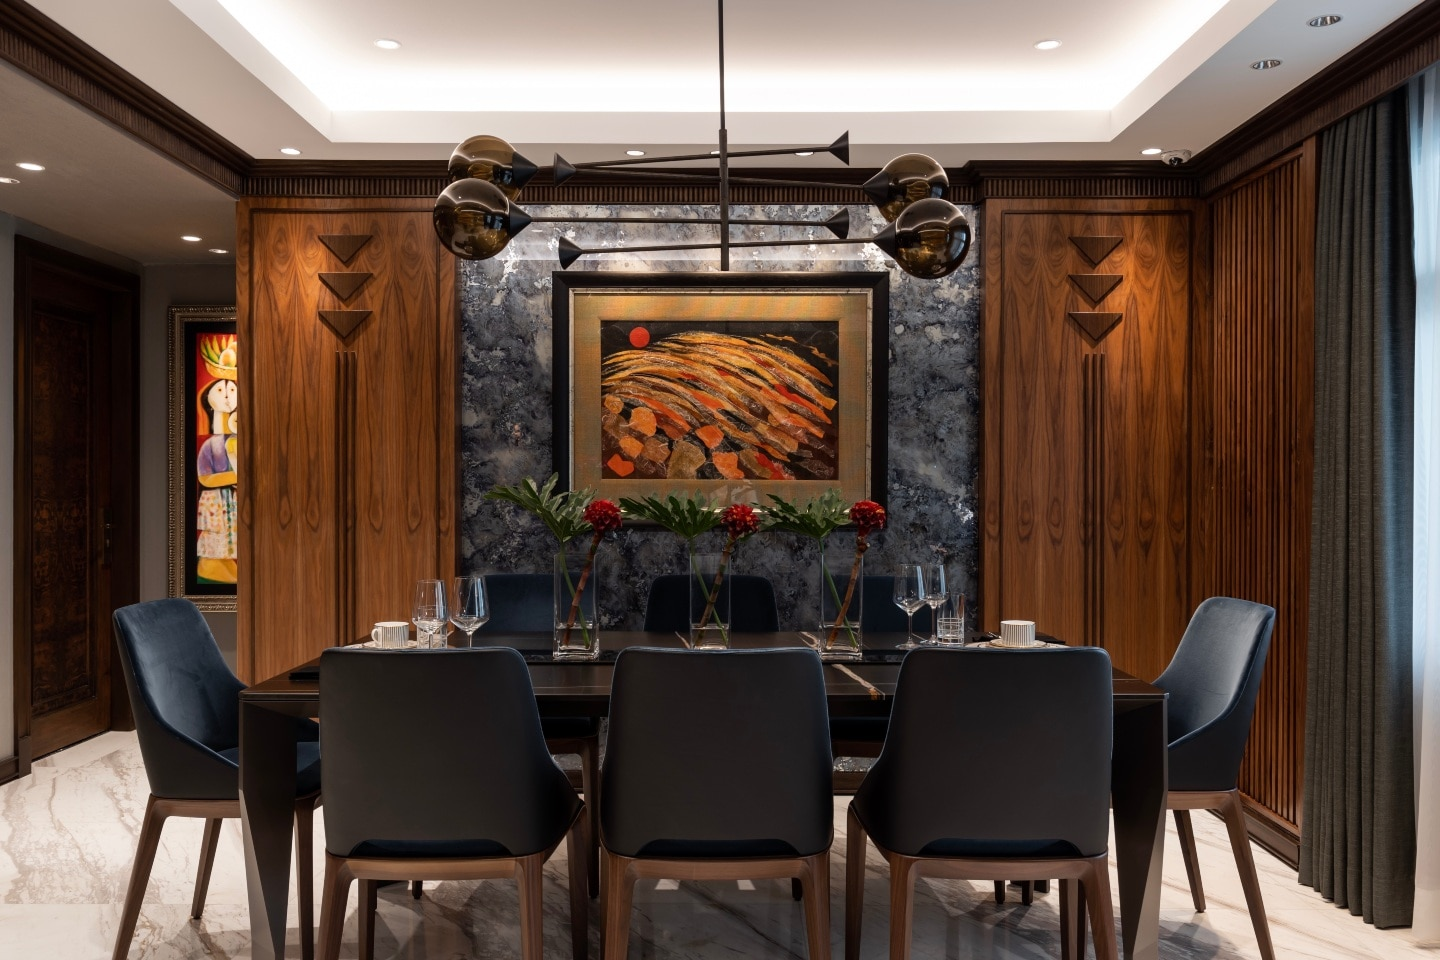 In the dining room, walnut veneers and solid walnut panels to hide the air conditioning units are used.  Hints of polished metal finishes, as in the chandelier above the dining table polish the look.